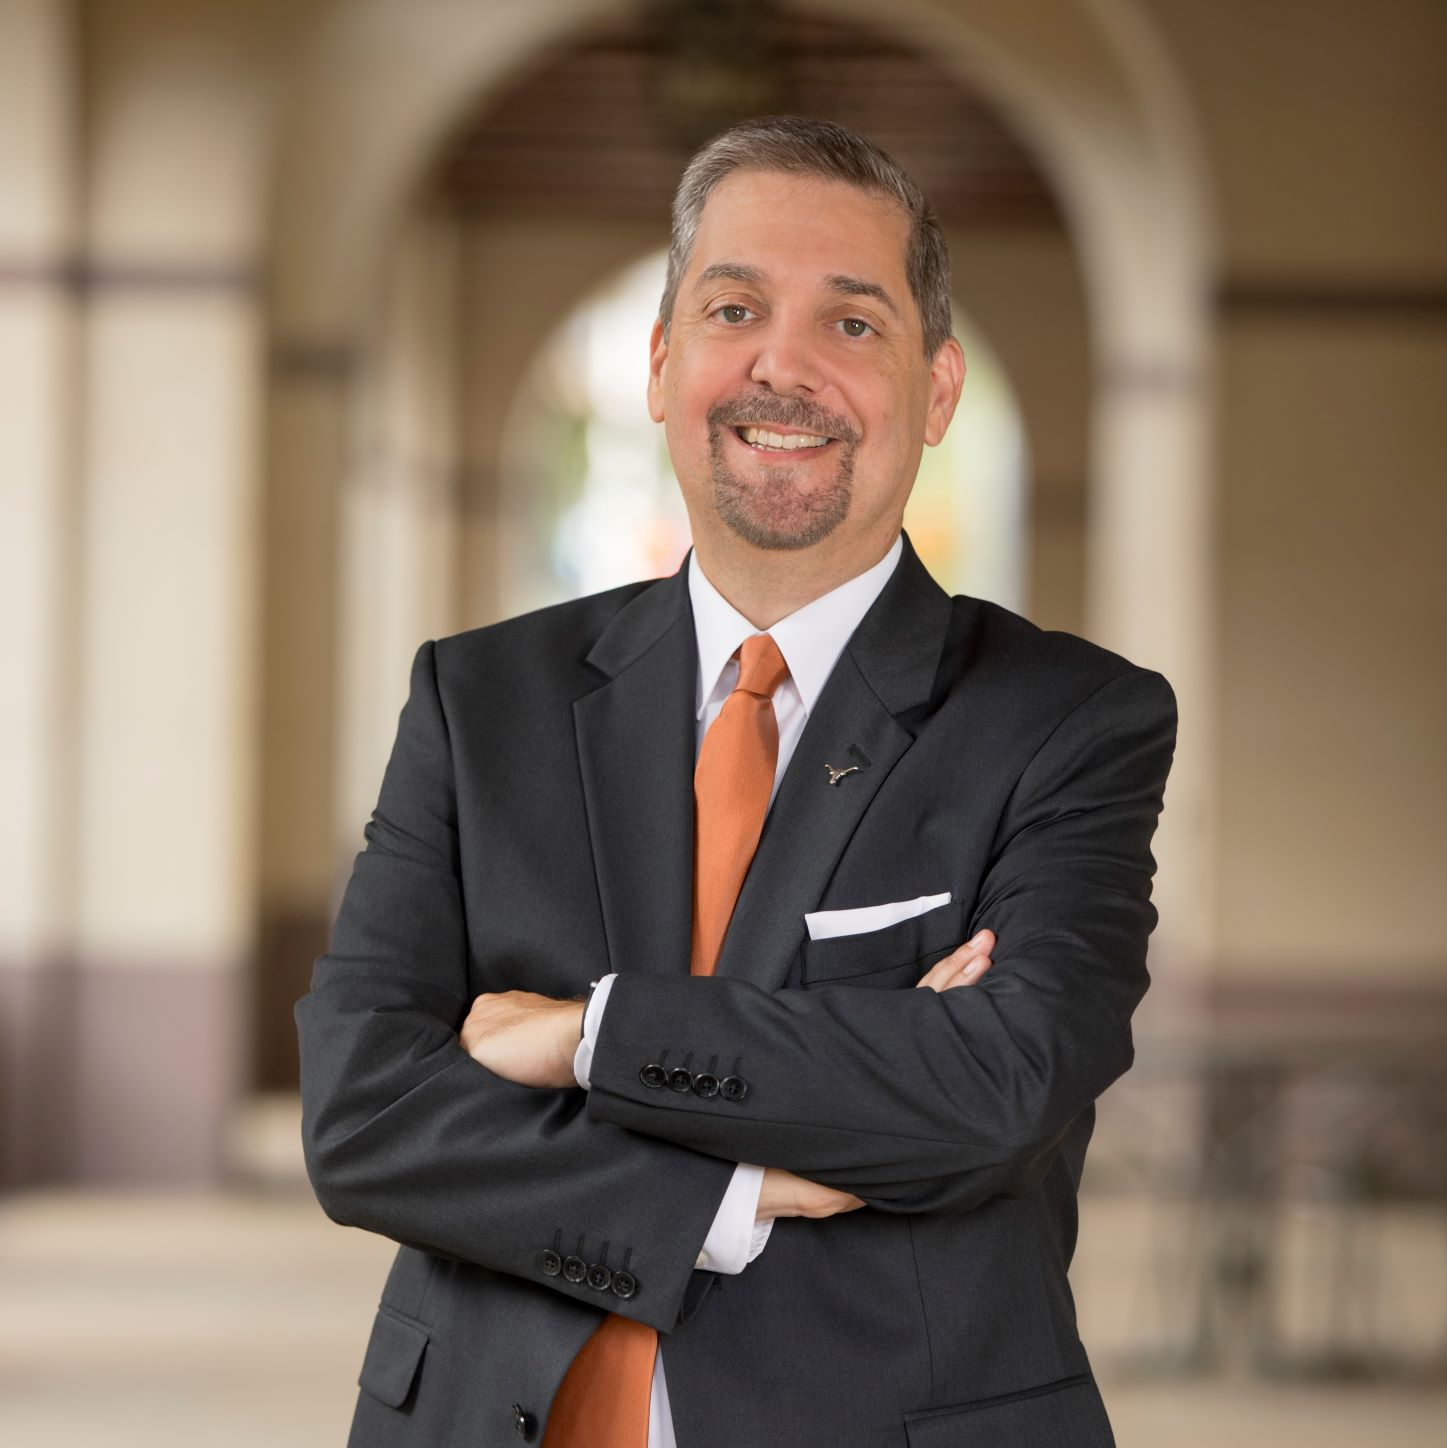 Charles Martinez in a suit with an orange tie.